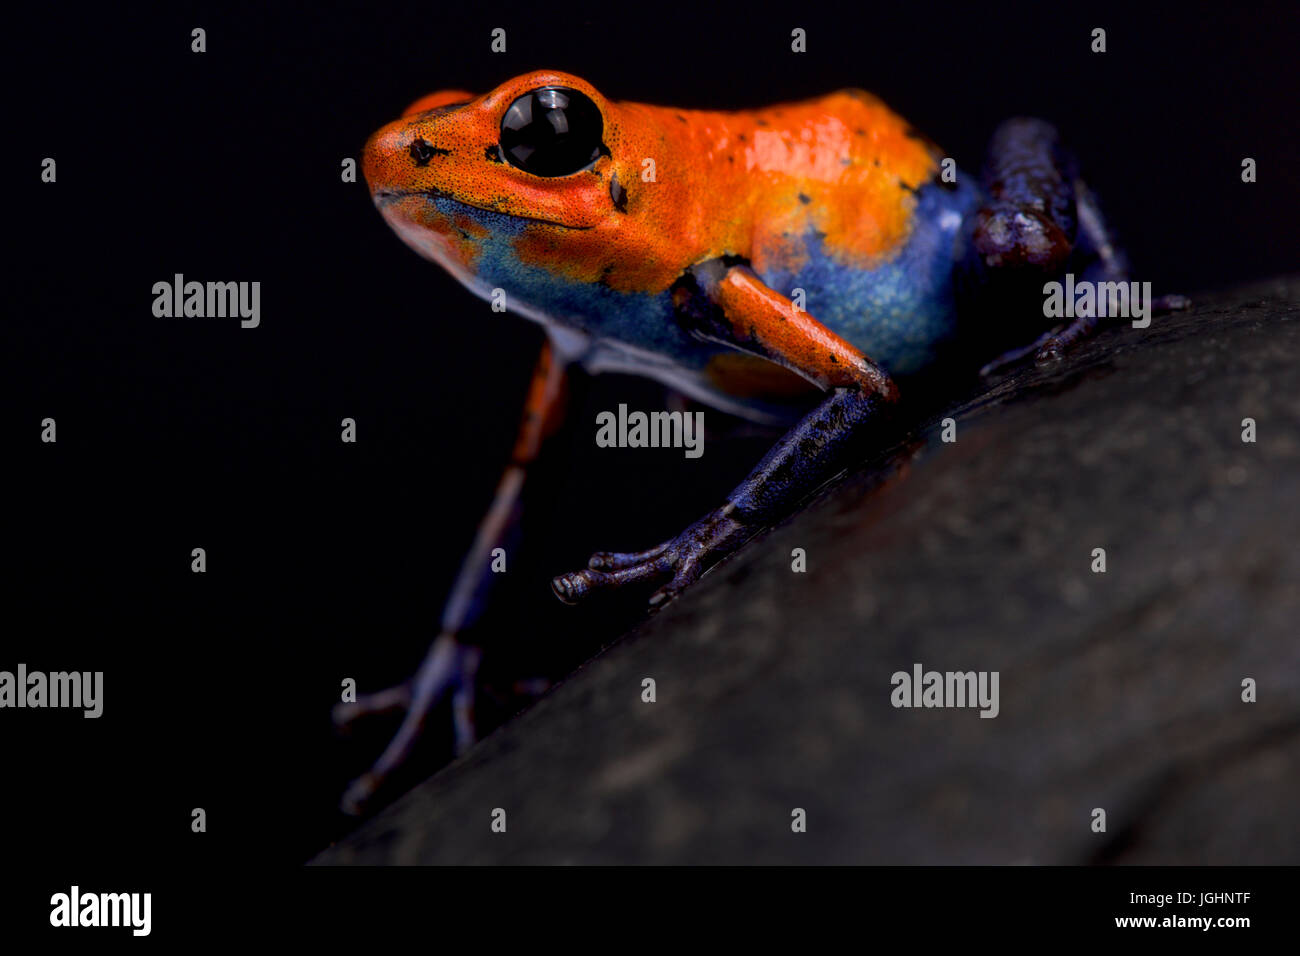 Strawberry dart frog, Oophaga pumilio 'Blue Jeans' au Nicaragua Photo Stock